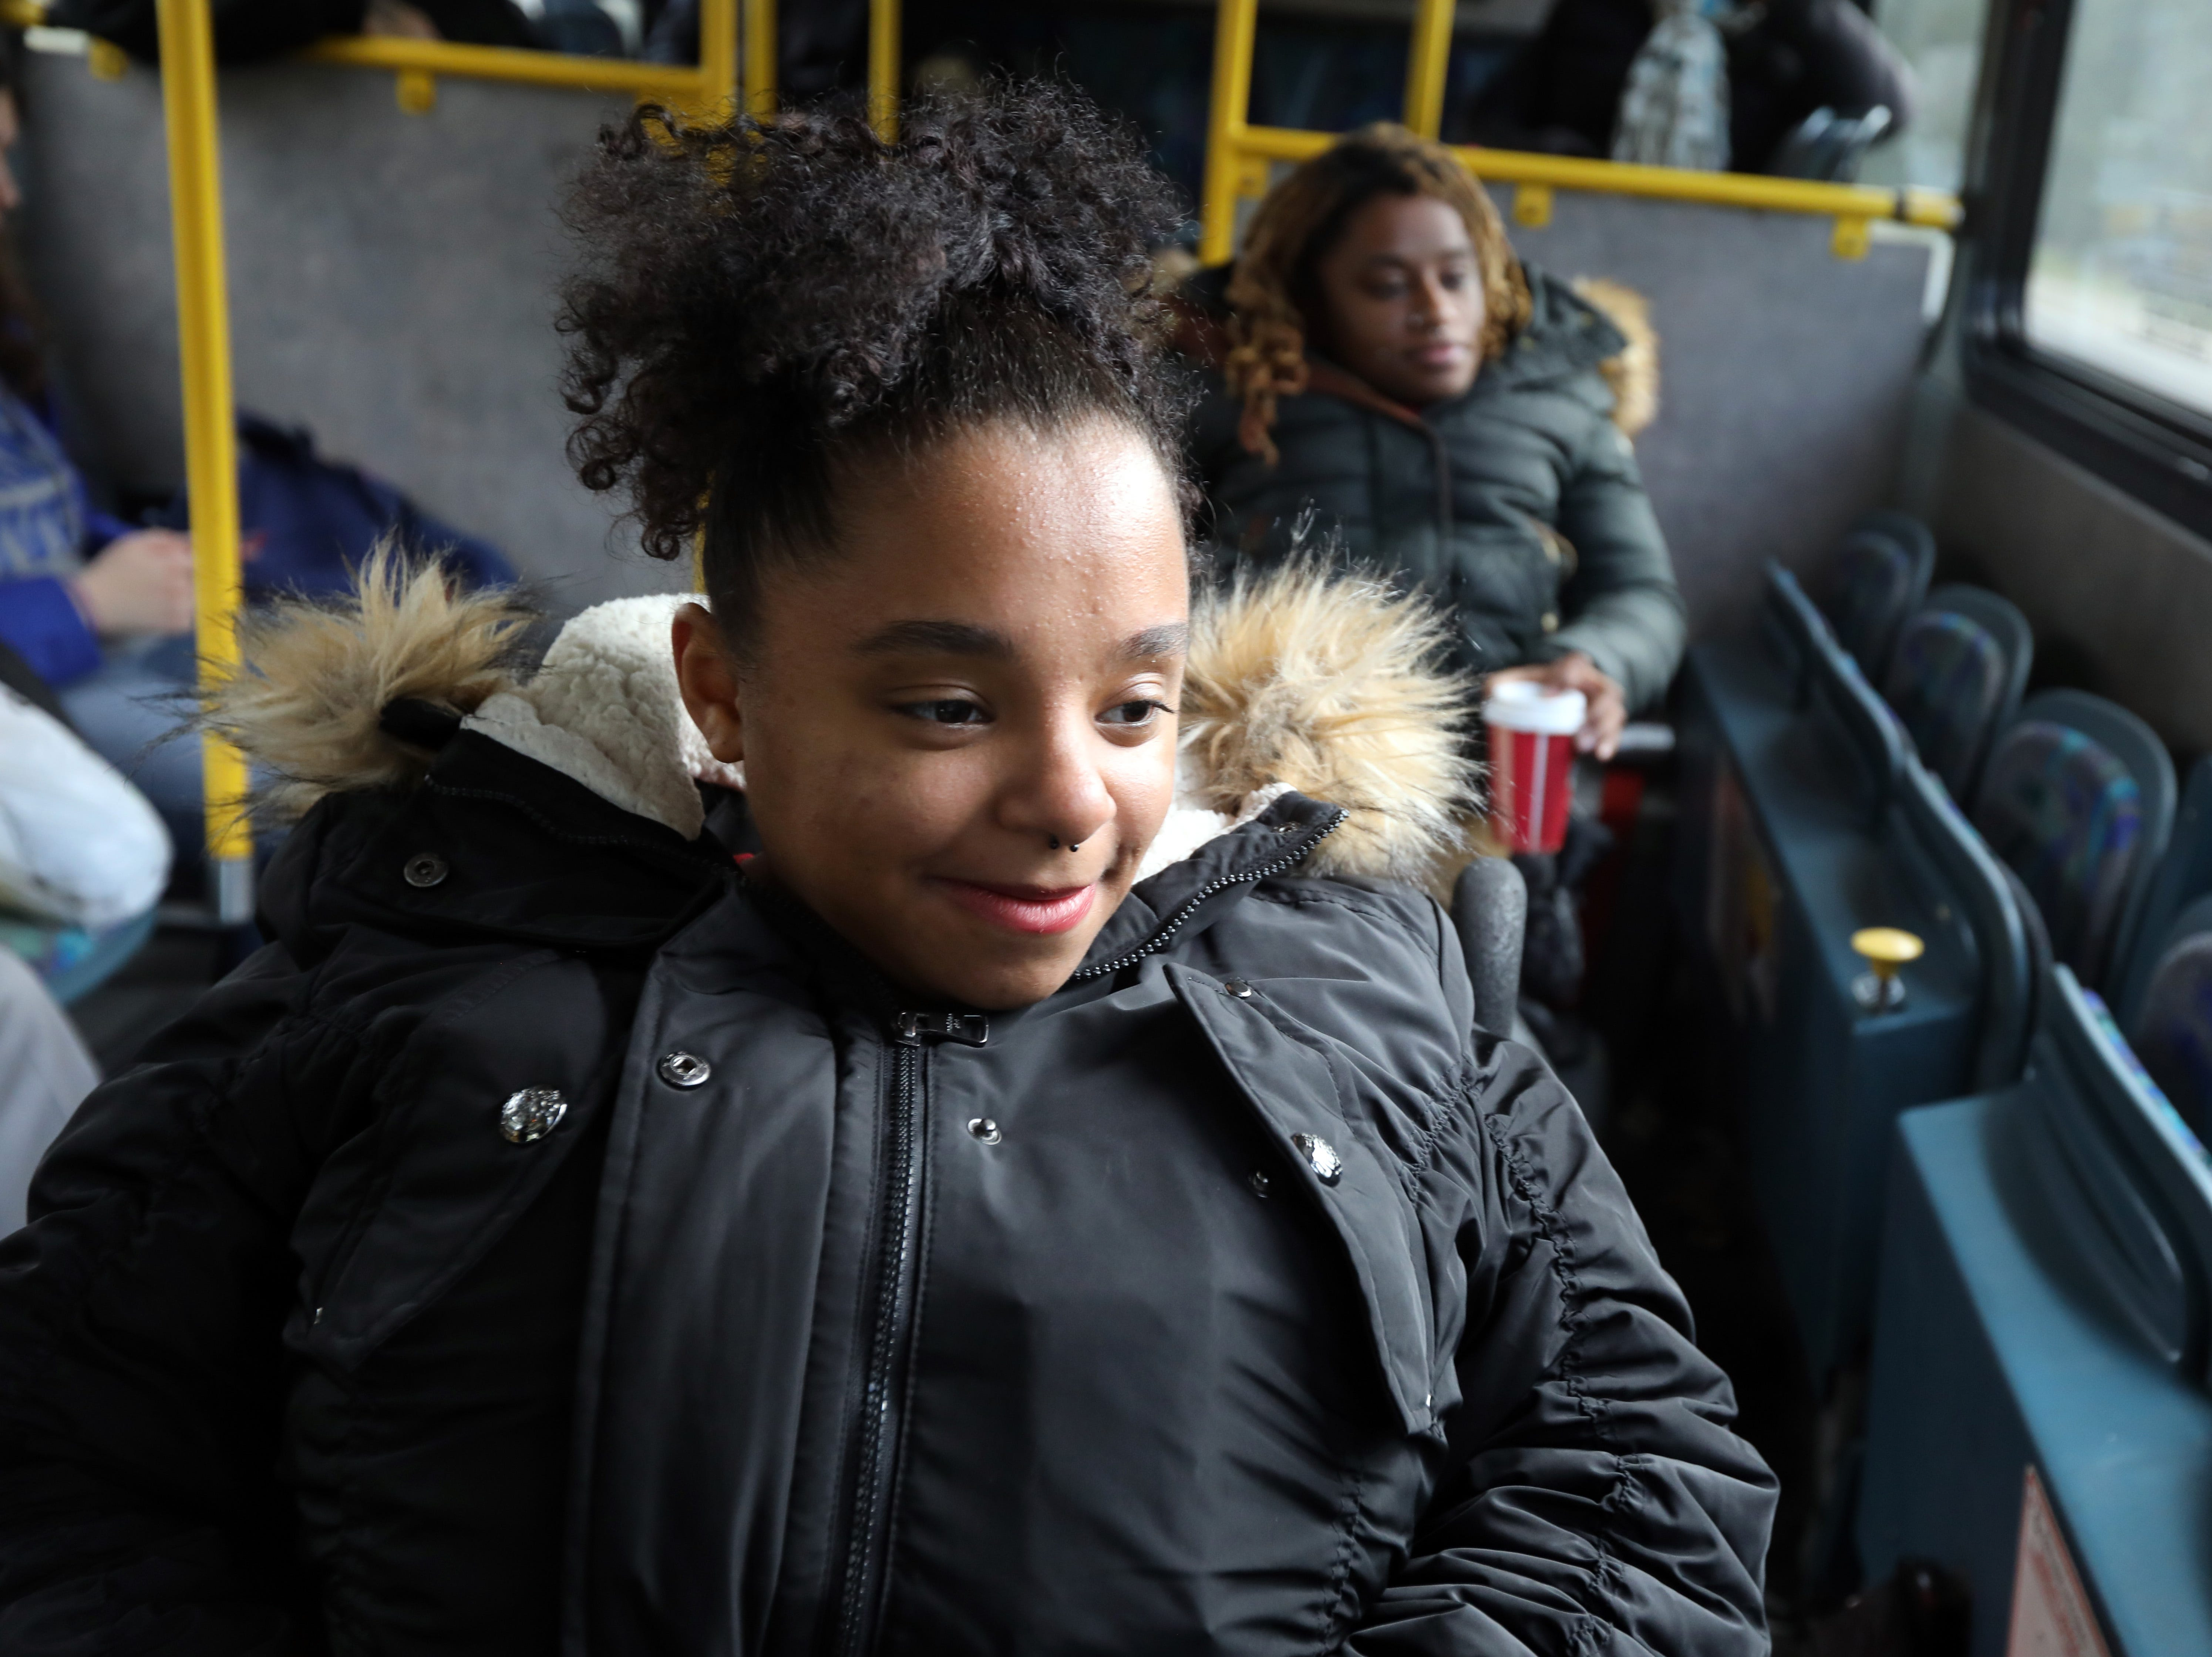 Zasia Davis, 22, left, and her sister Diana Bouknight, 28, ride the bus home after working at the Target in Spring Valley Nov. 27, 2018.